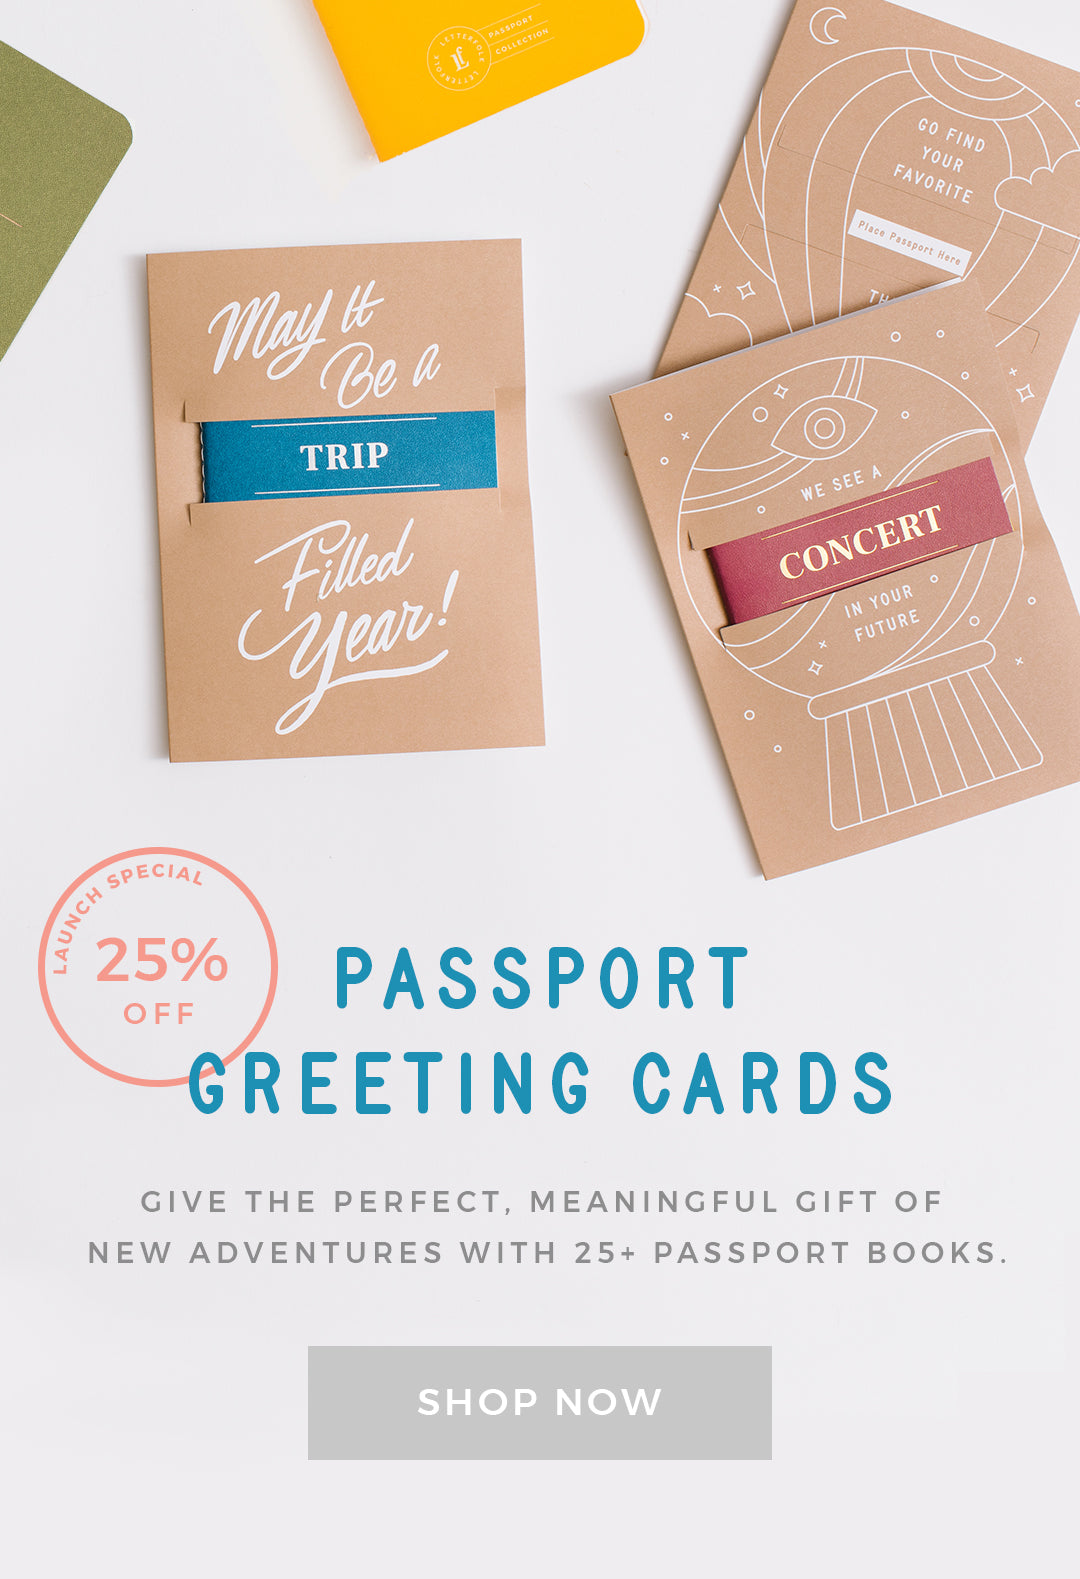 Passport Greeting Cards by Letterfolk